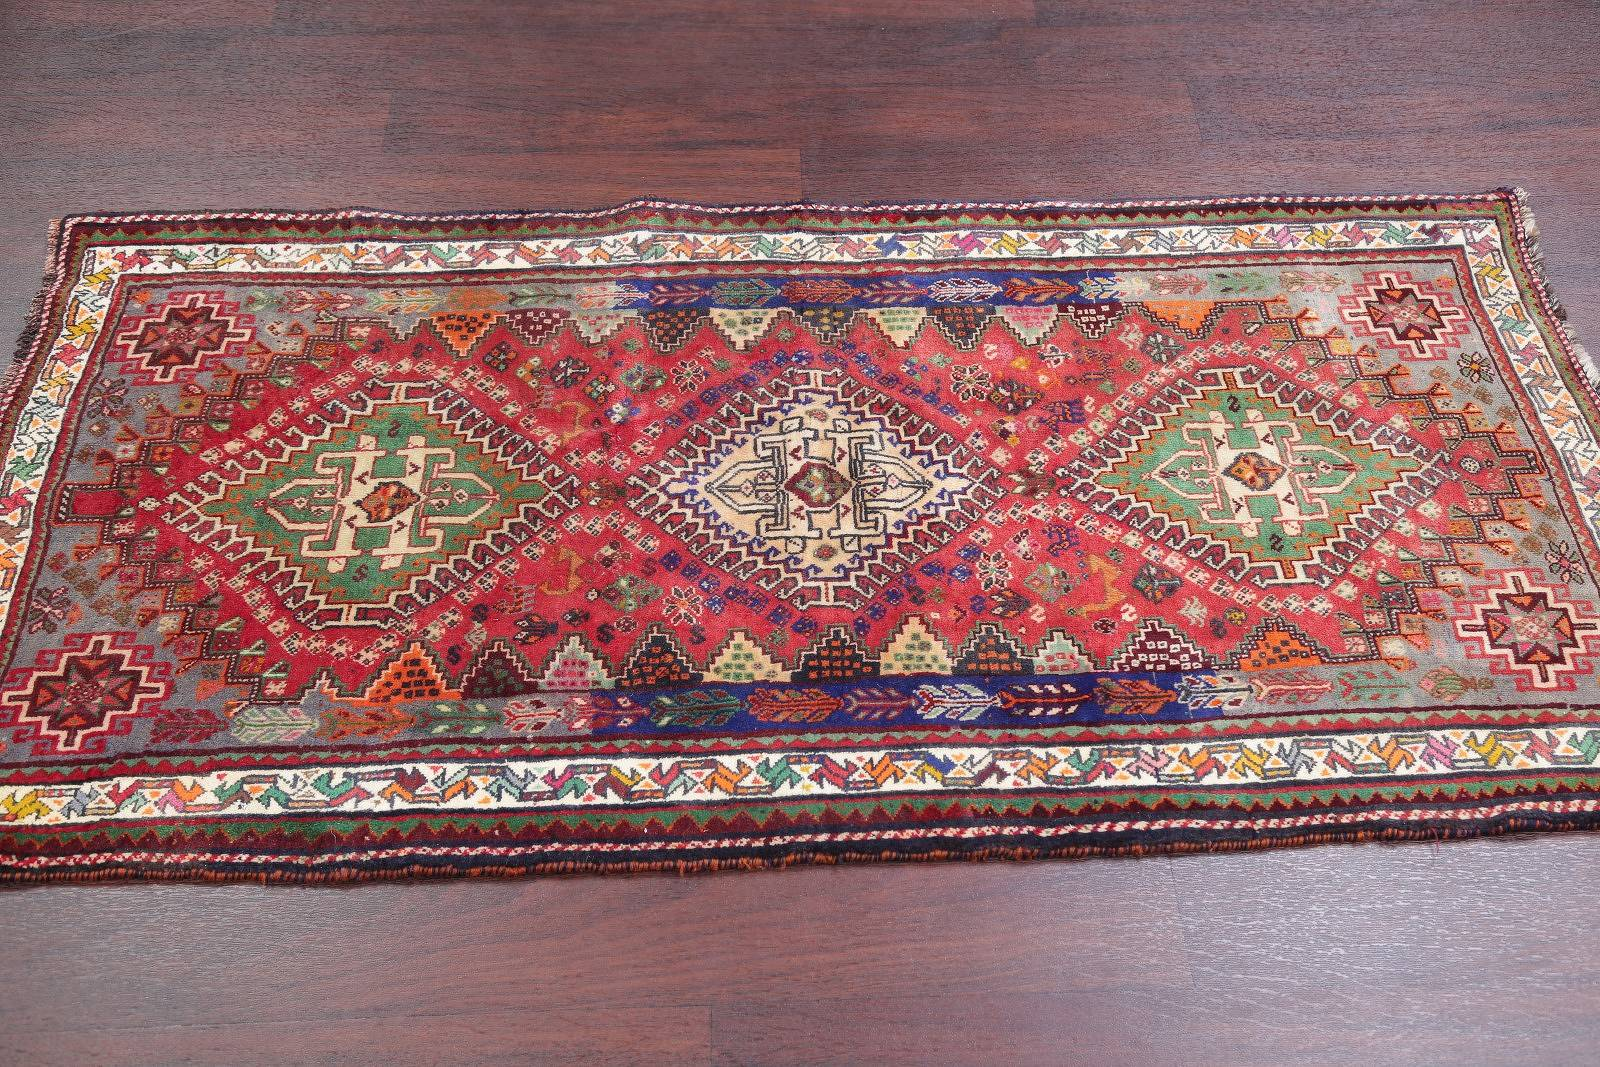 One of a Kind Tribal Geometric Abadeh Persian Hand-Knotted 3x6 Wool Runner Rug